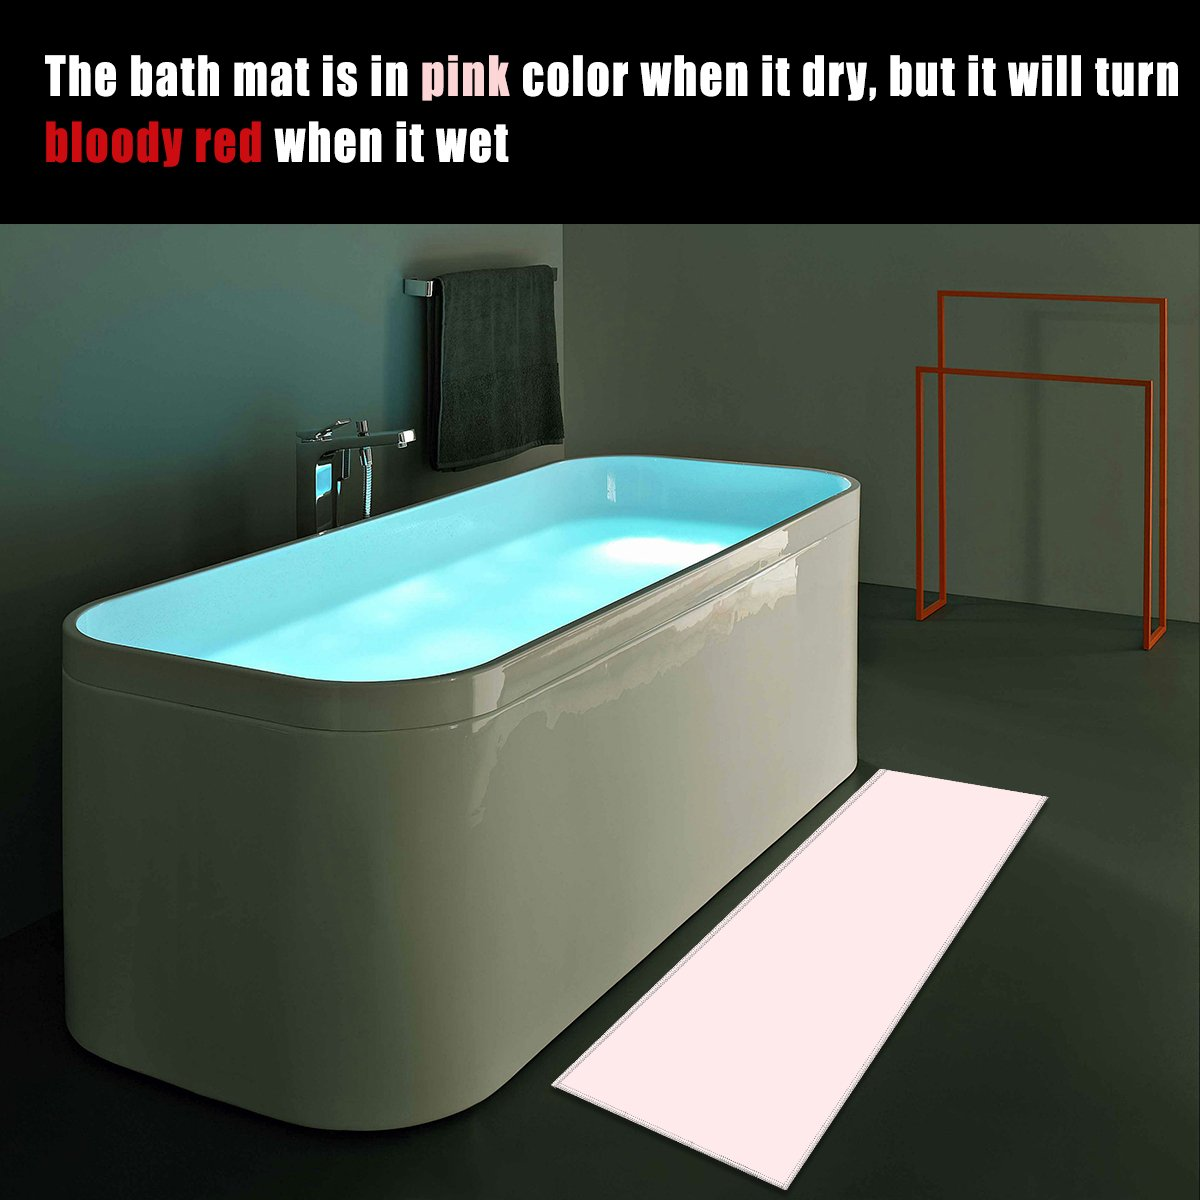 Amazon.com: Bloody Bath Mat - Color Changing Sheet Turns Red When ...